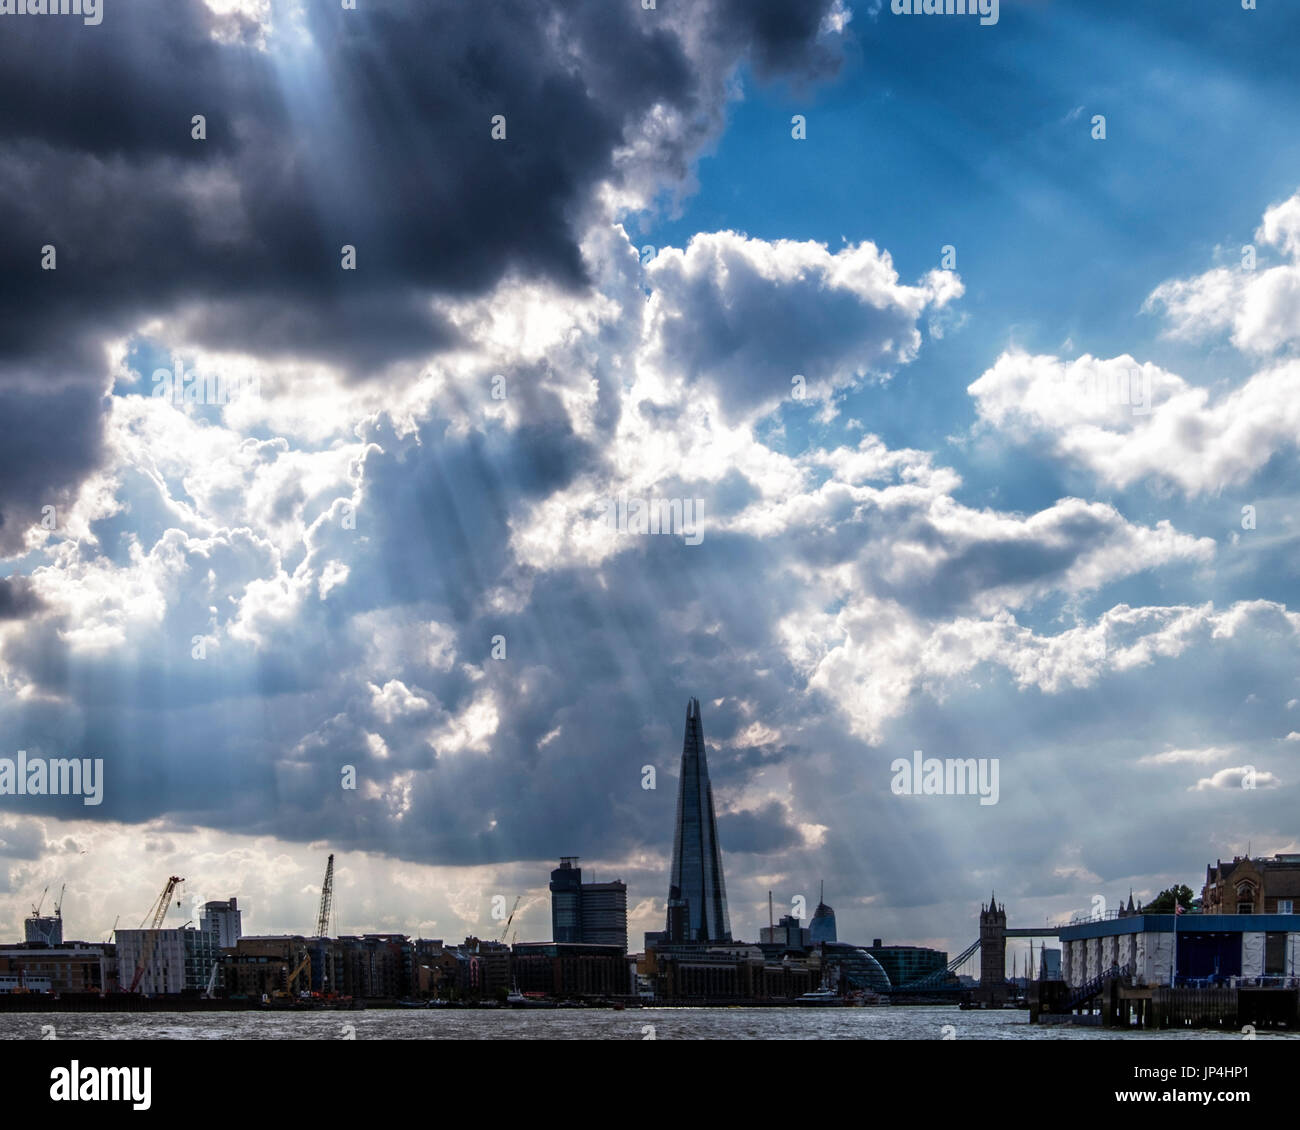 London,Uk.London skyline with sun shining through black cloudy sky. Rays of light, the Shard,dark clouds. - Stock Image